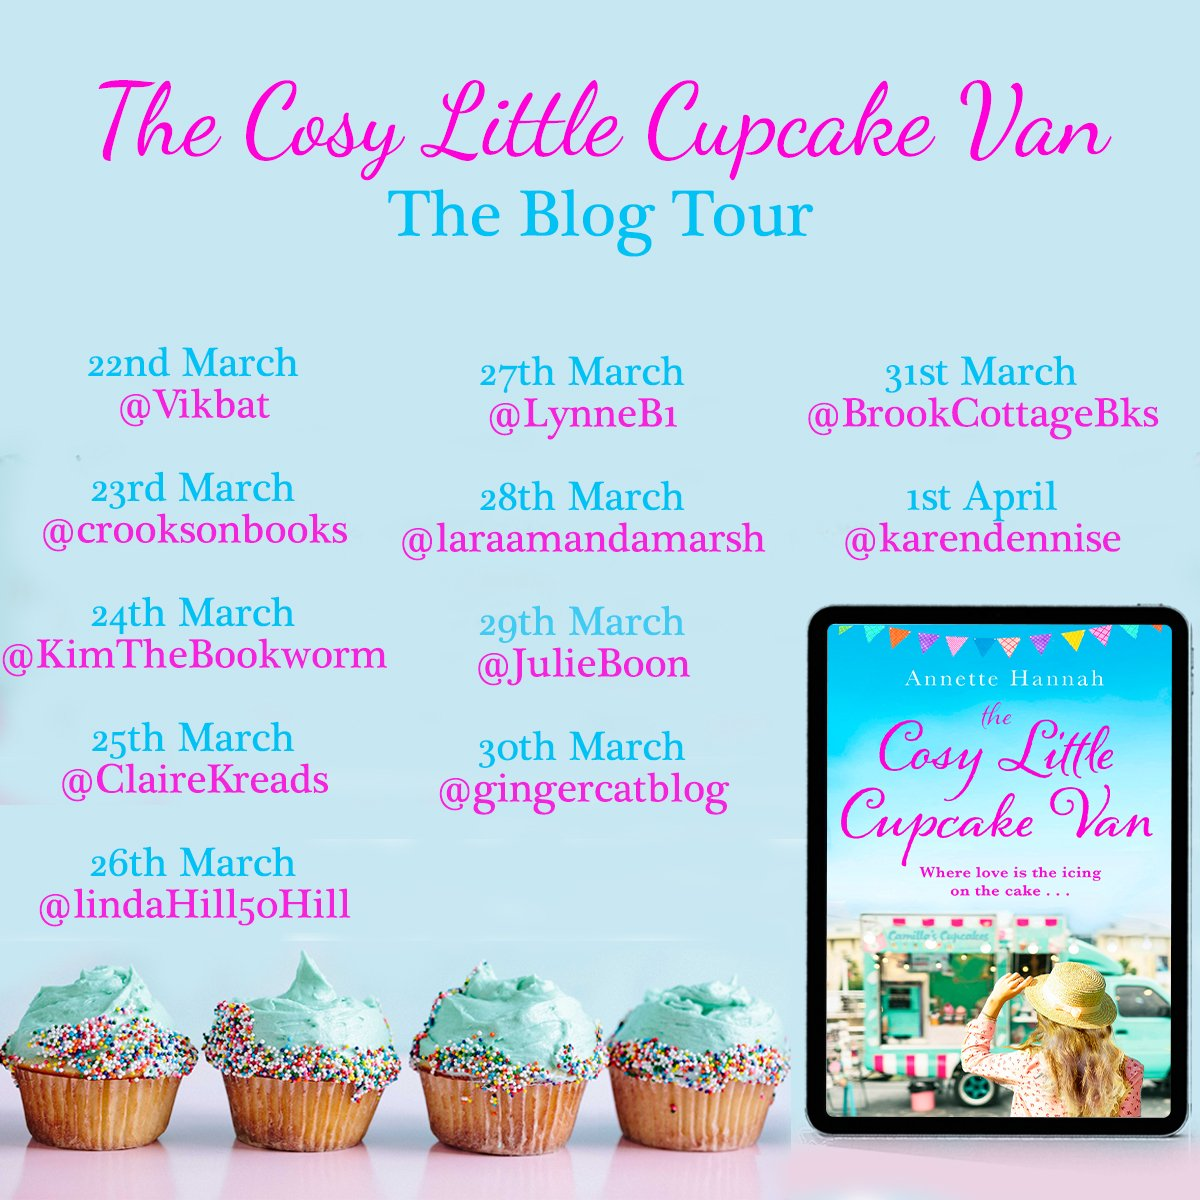 The Cosy Little Cupcake Van – Annette Hannah